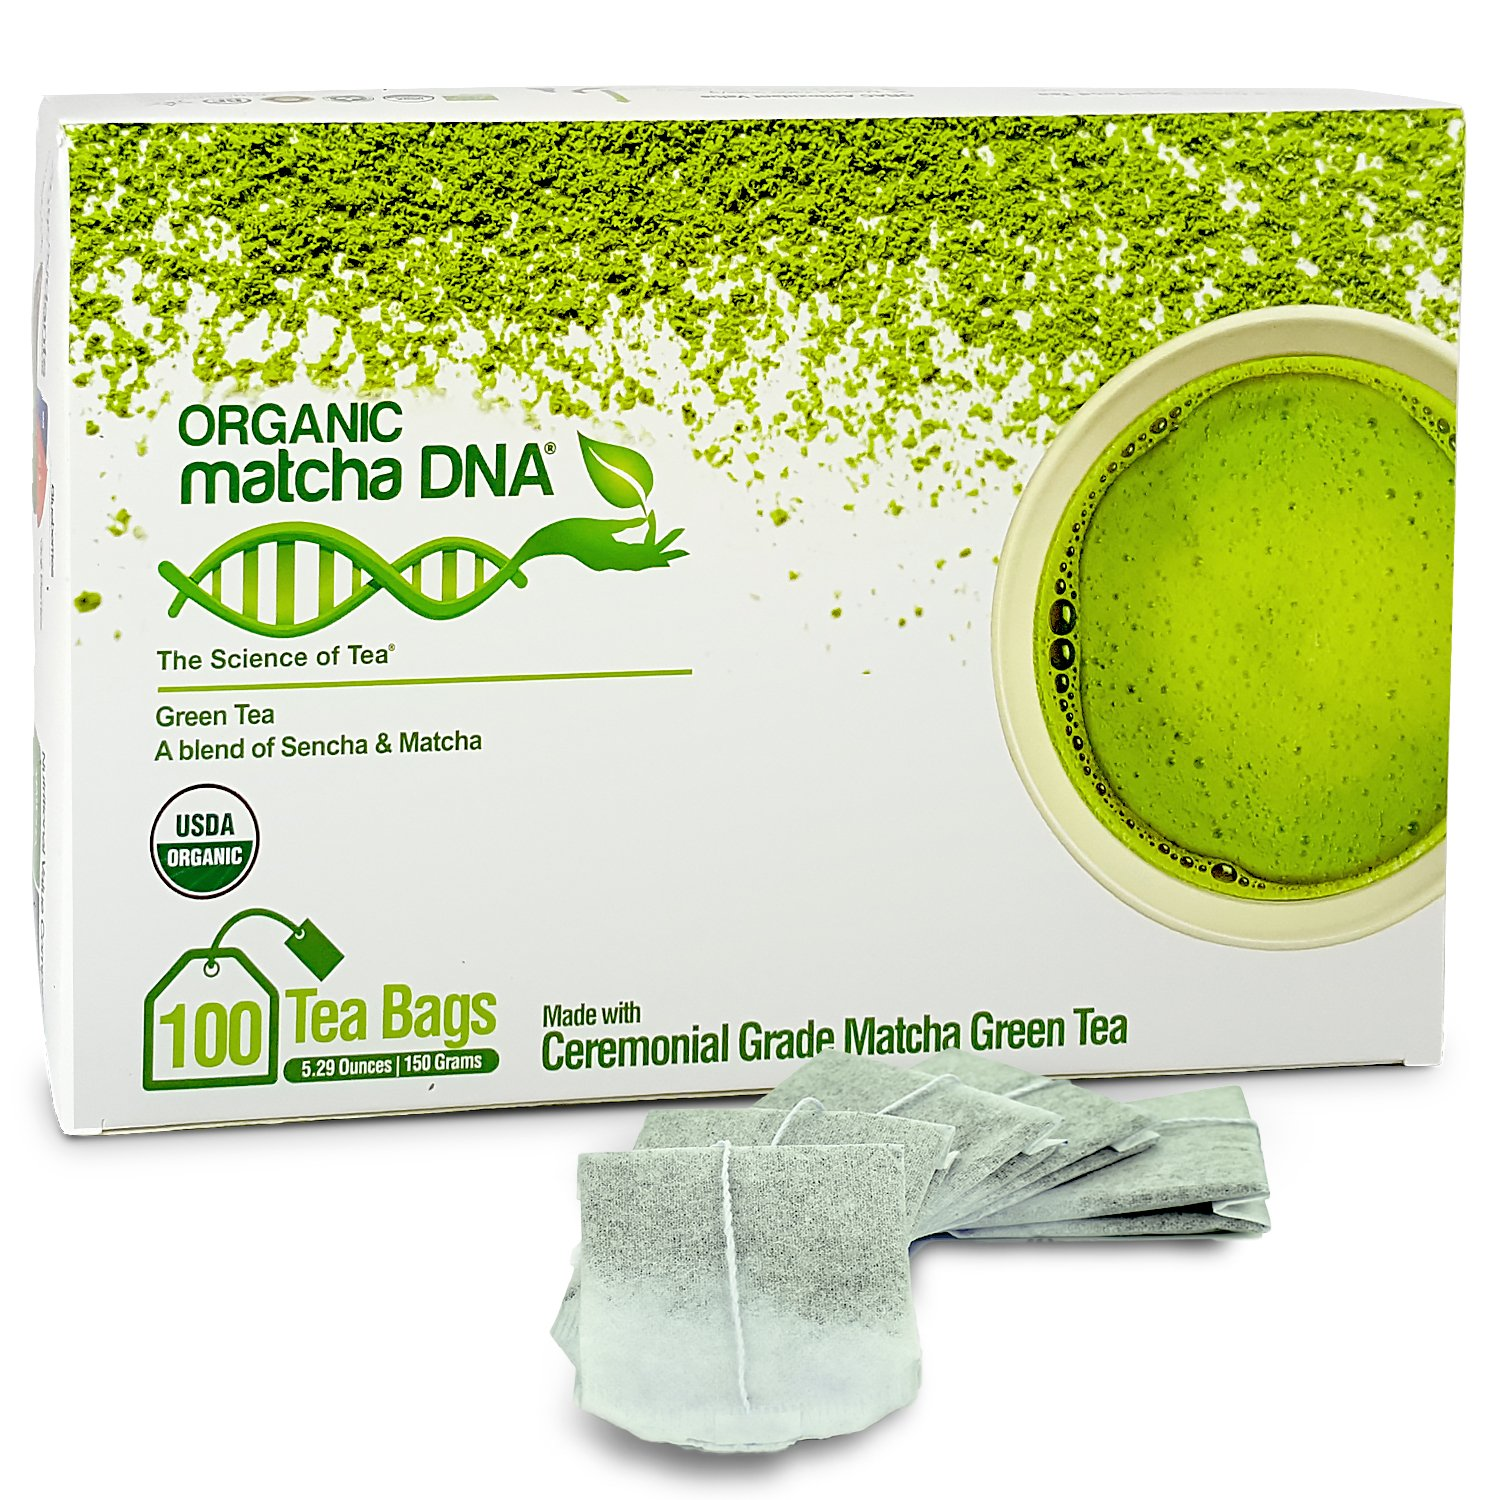 Matcha Teabags MatchaDNA Certified Organic Matcha Green Tea - 100 Tea Bags Accelerated Intelligence Inc. SYNCHKG111160